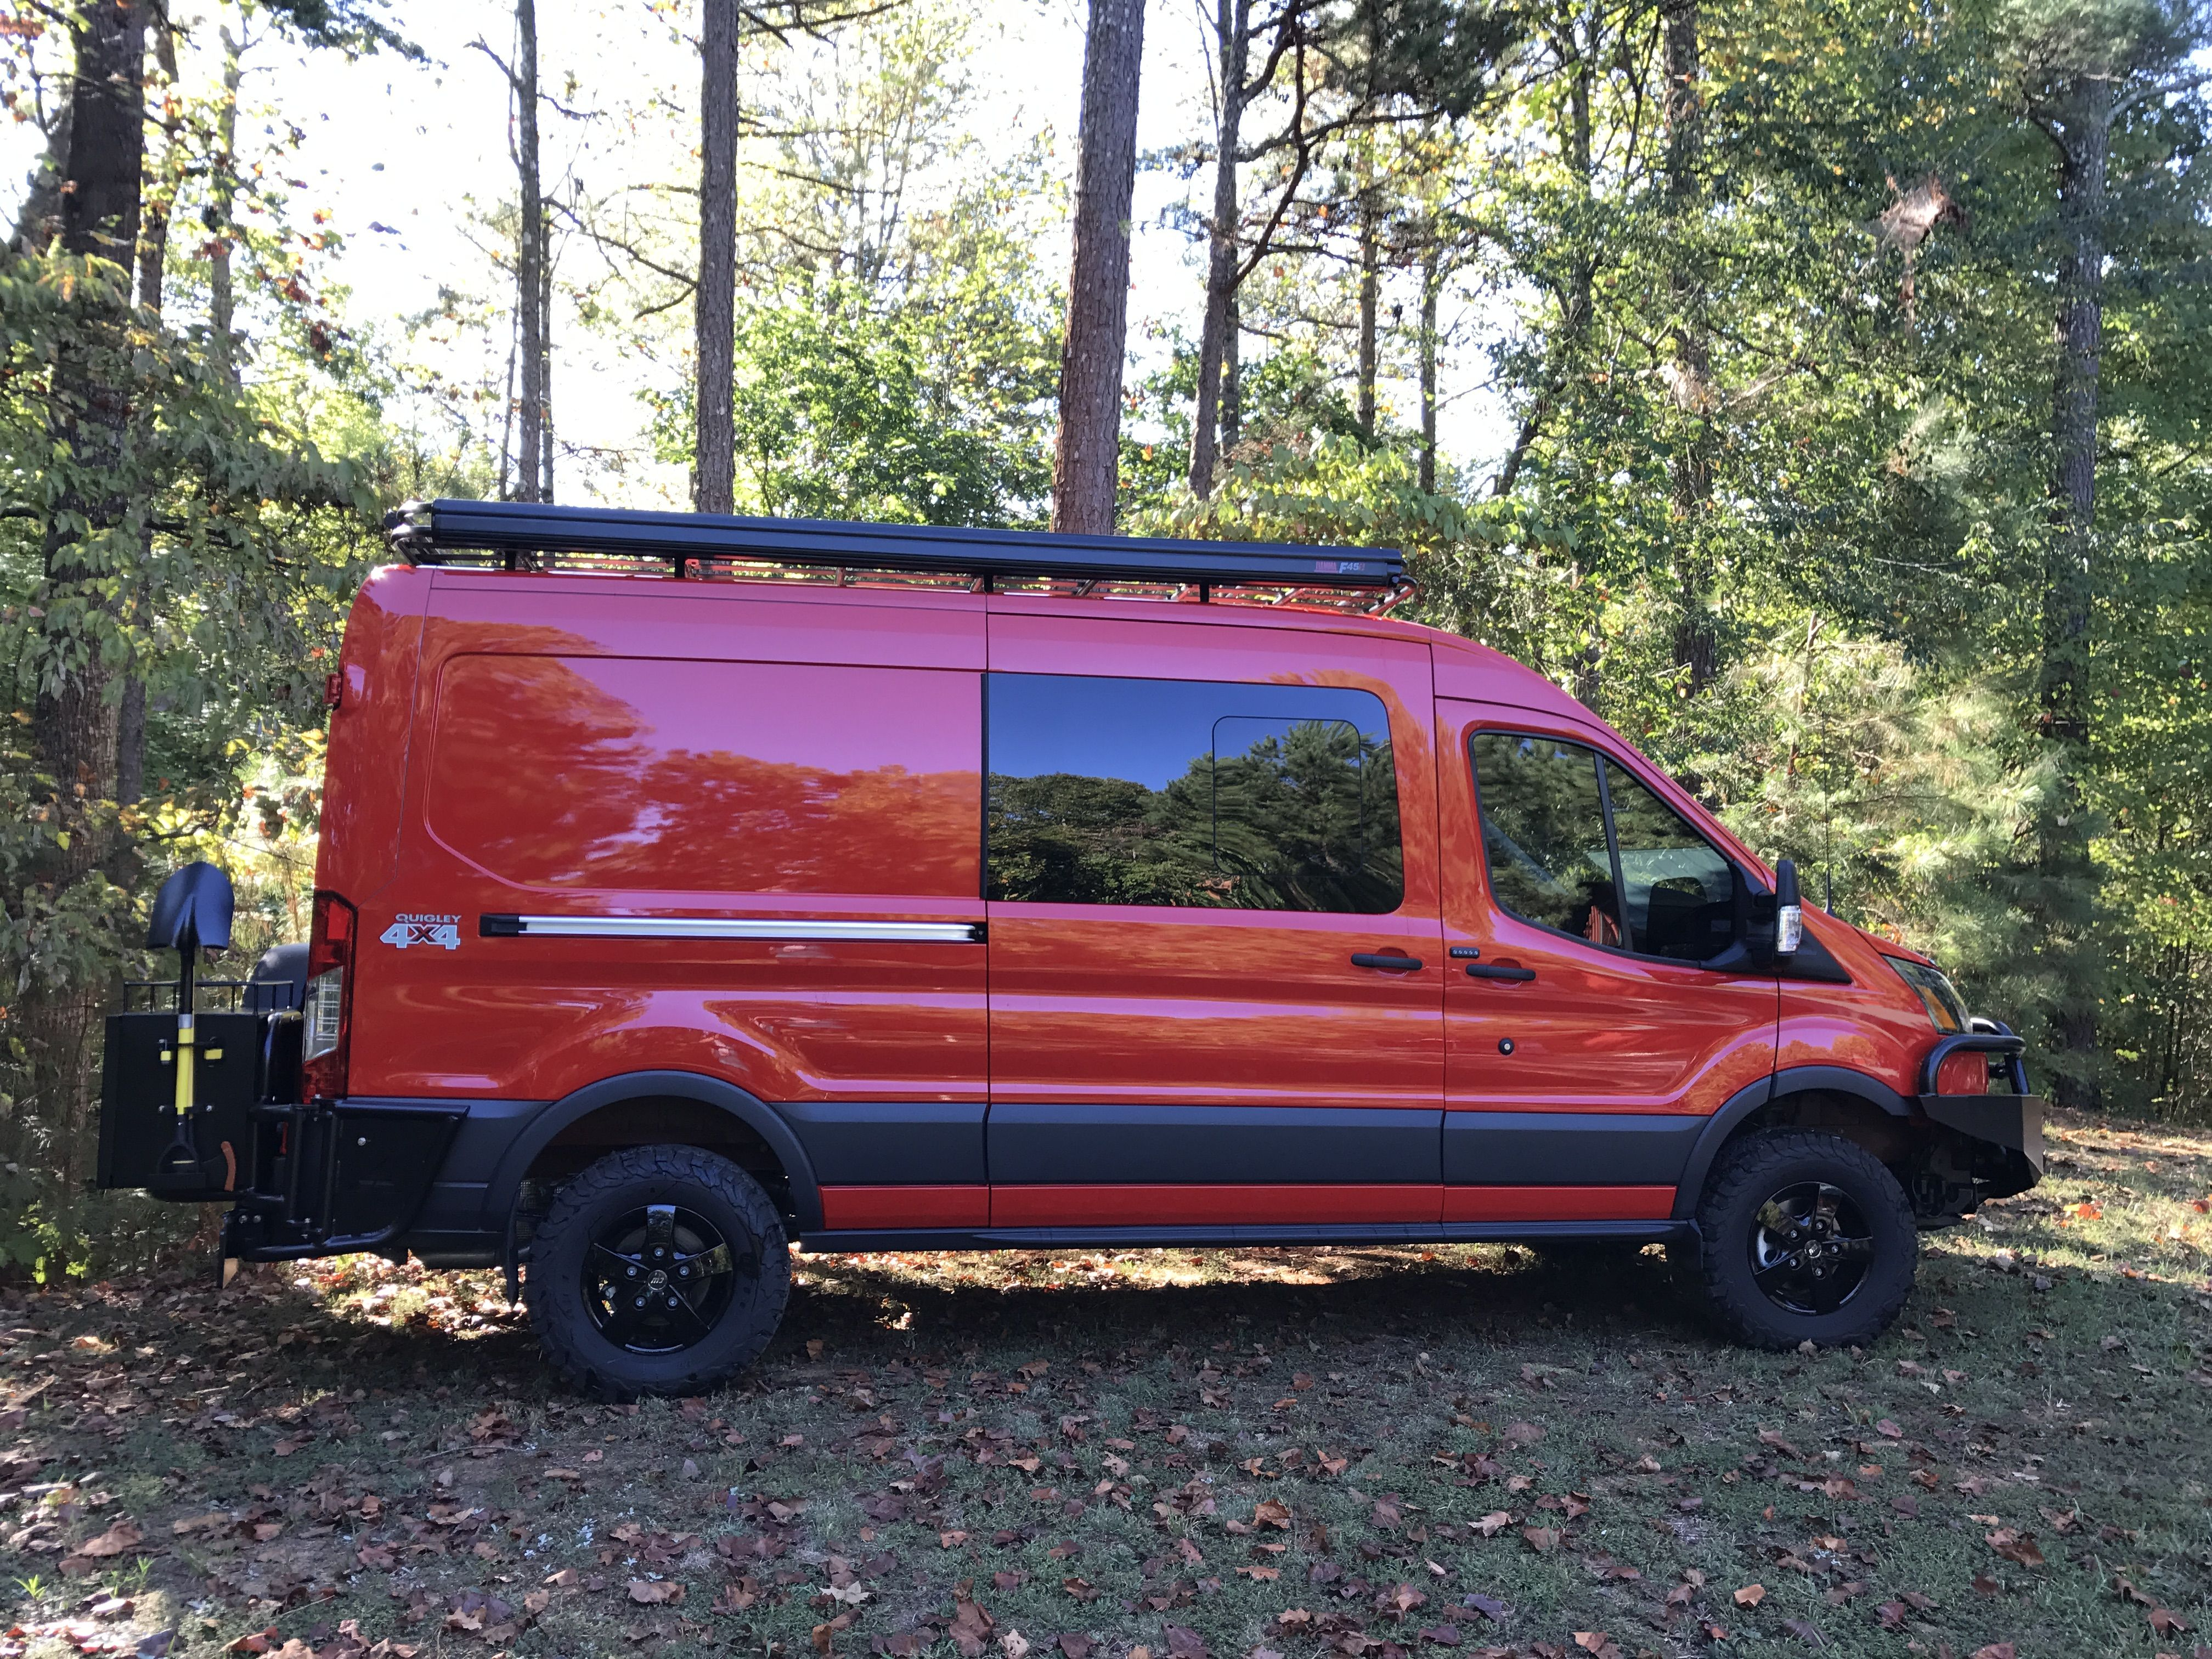 Ford e 350 eb van with aluminess gear all around aluminess roof - Ford Transit With Aluminess Front Bumper Rear Bumper With Tire And Box Swing Arms